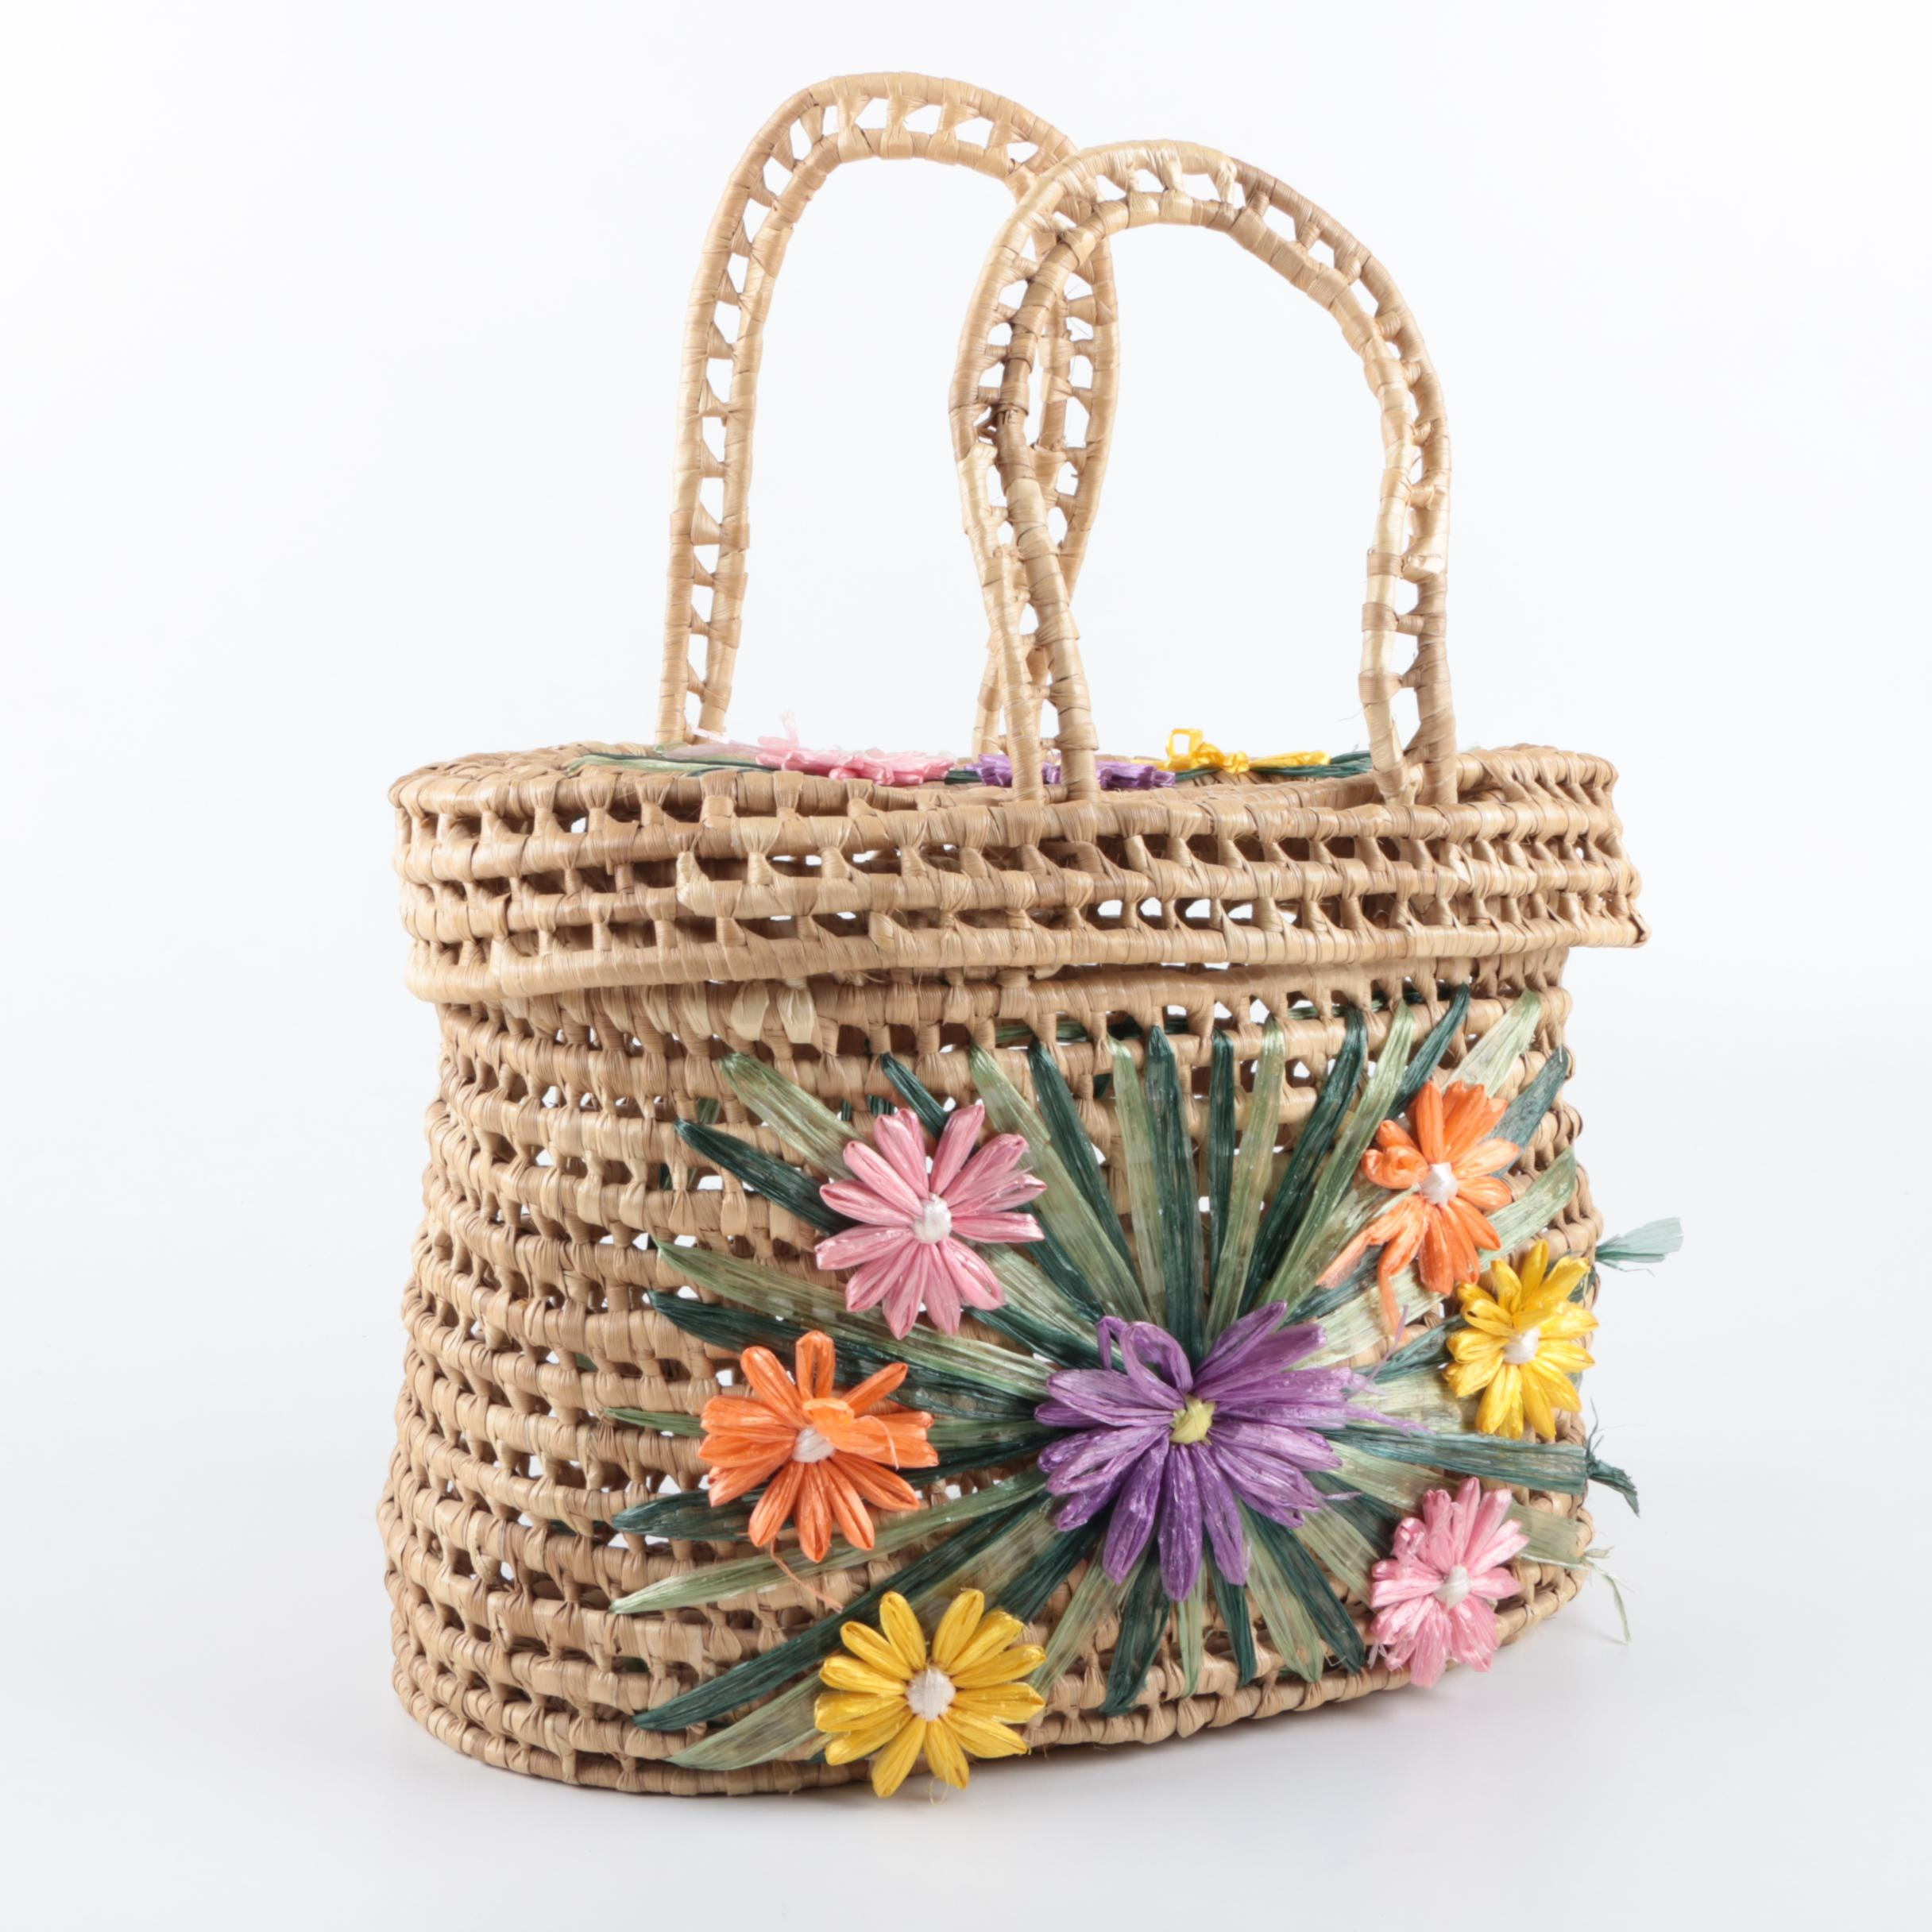 Vintage Woven Basket Handbag with Colorful Floral Accents